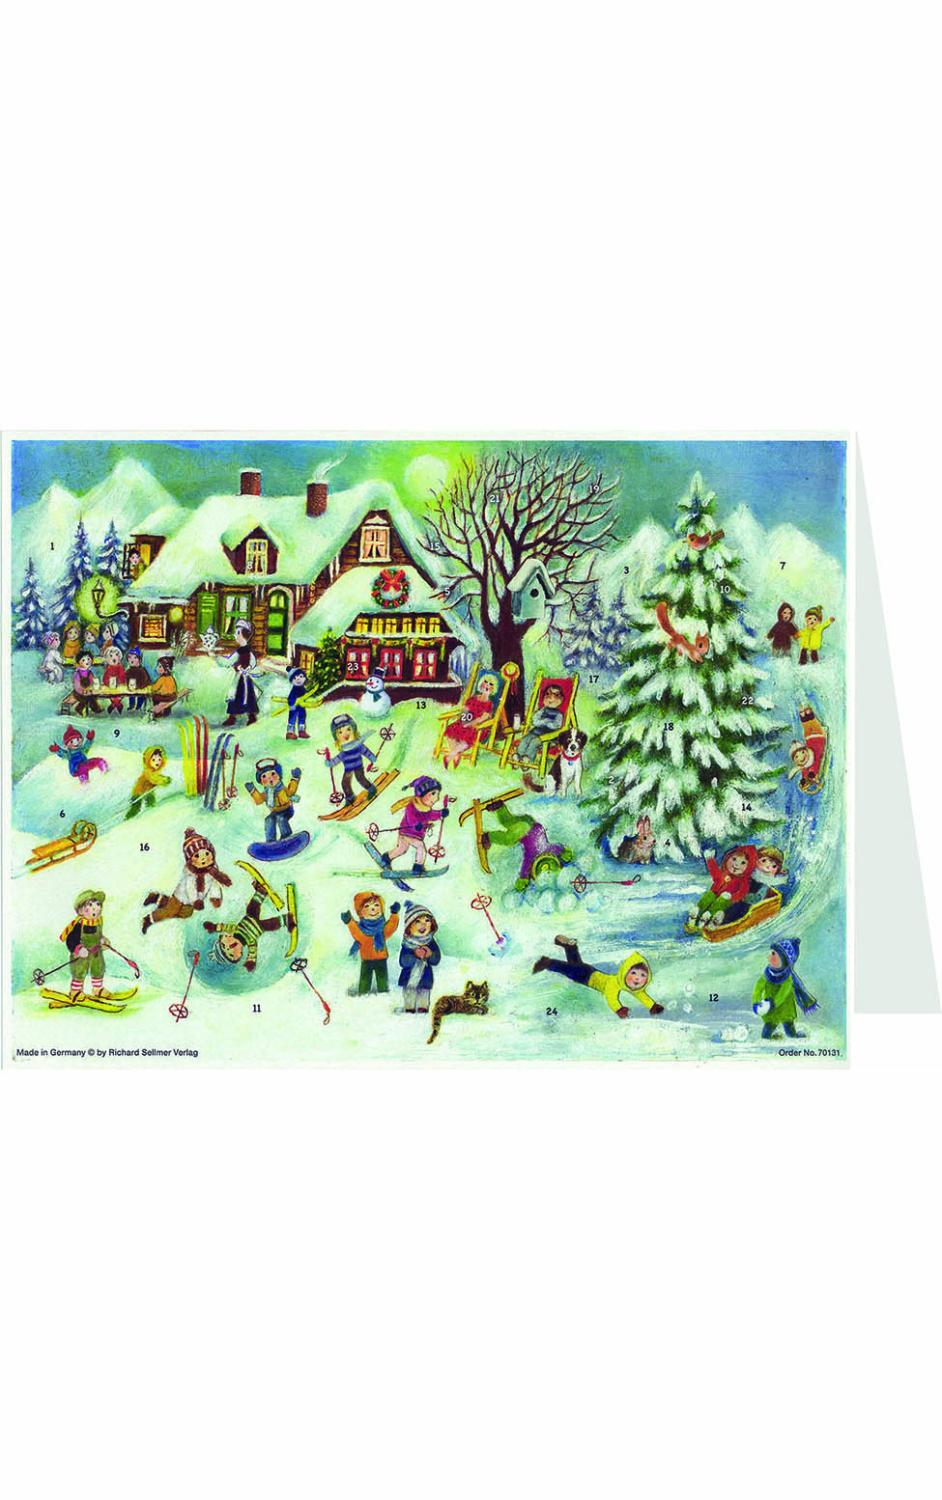 ADV40131 - Sellmer Advent Postcard - Ski Hut With Children Playing - 4.5